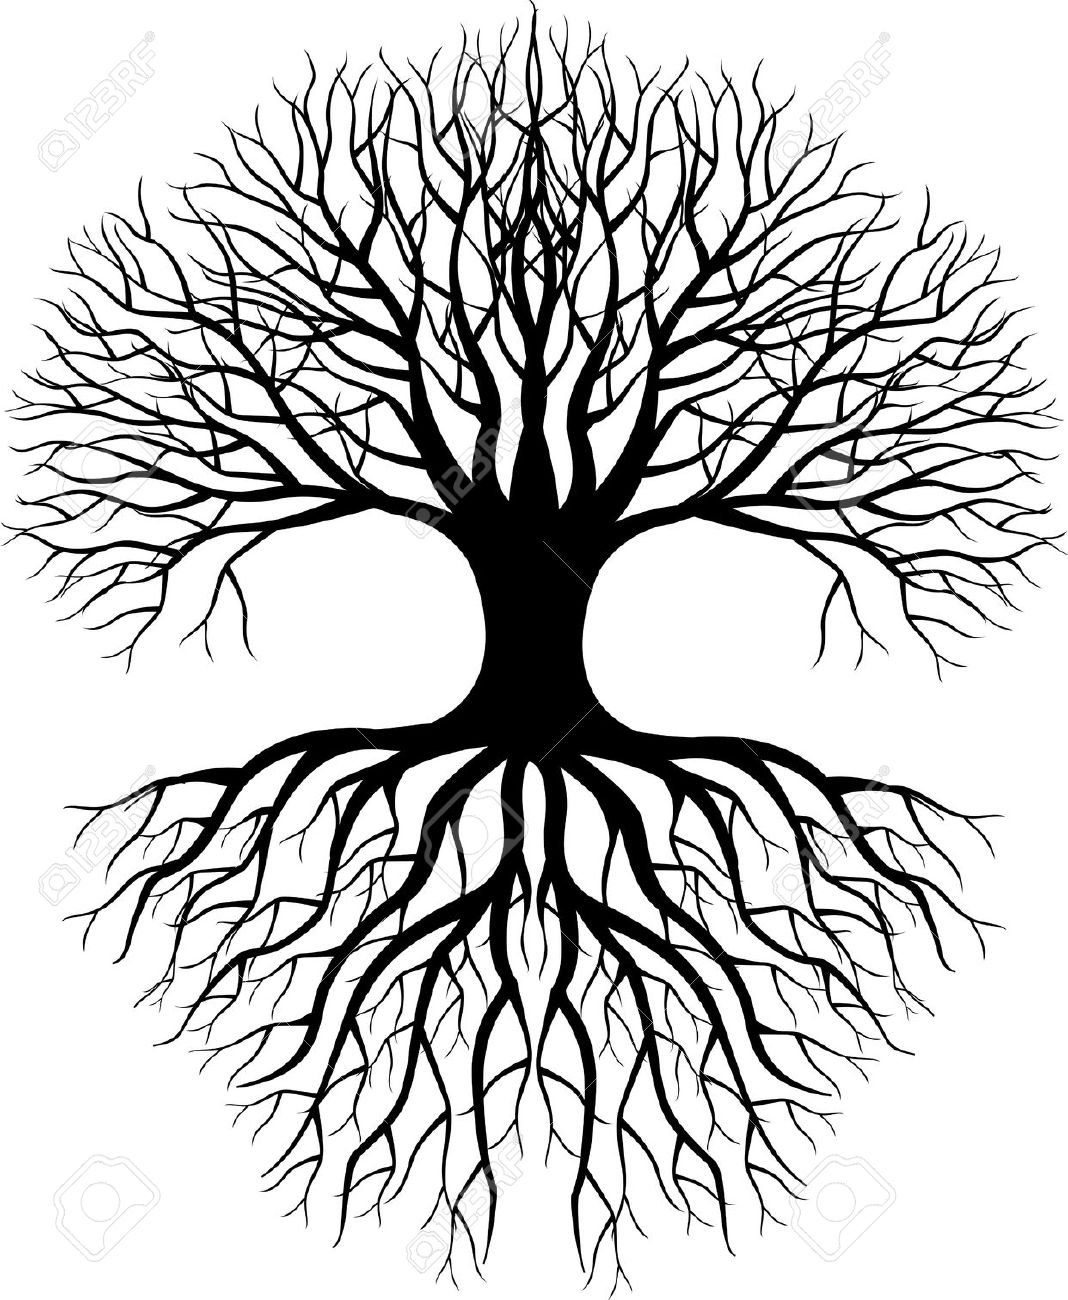 Tree Silhouette Royalty Free Cliparts, Vectors, And Stock.